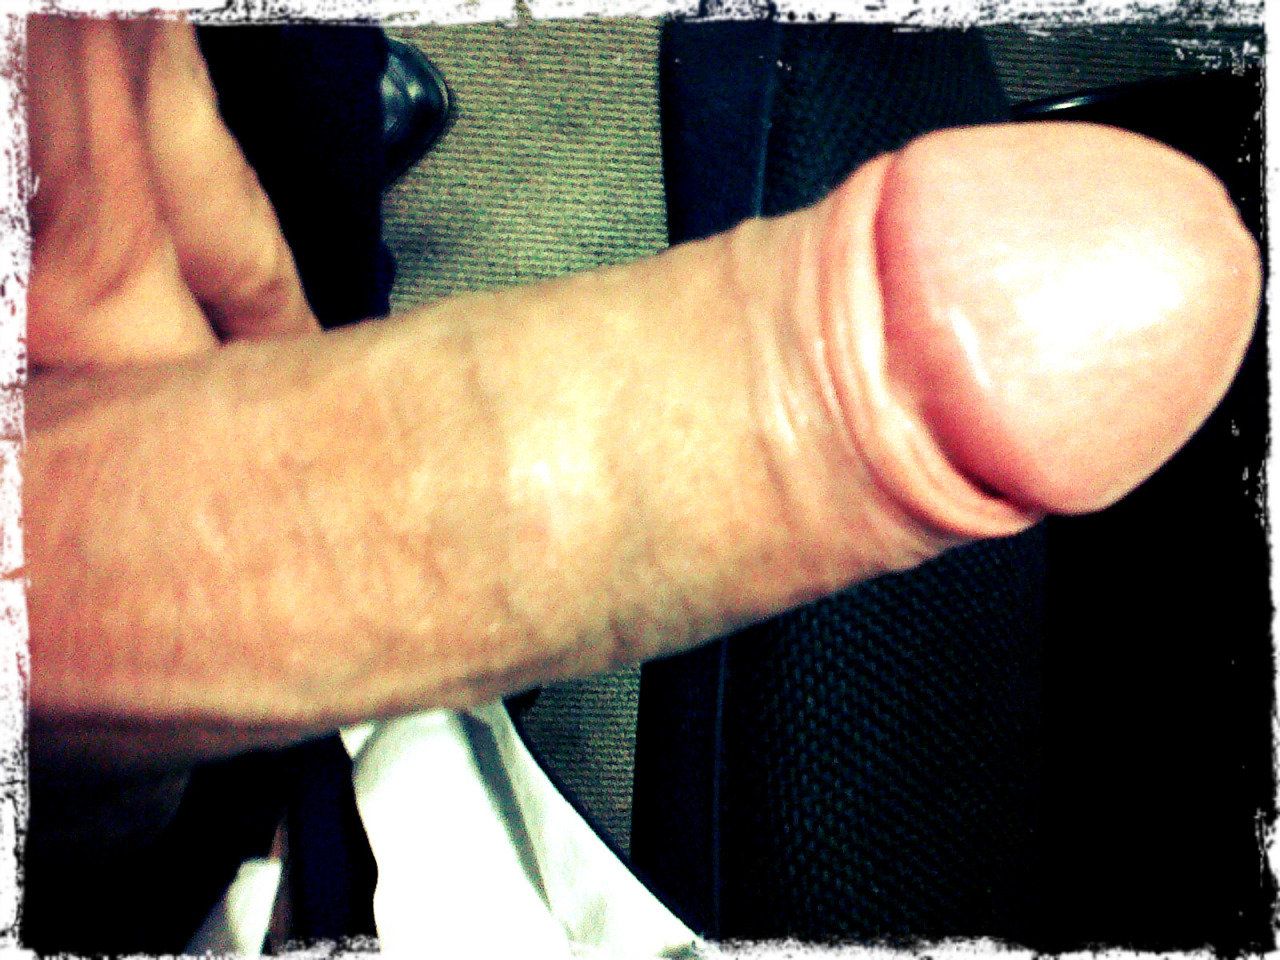 Here's my own cock. Do you guys like it???? Send me a picture of yours as well ;)